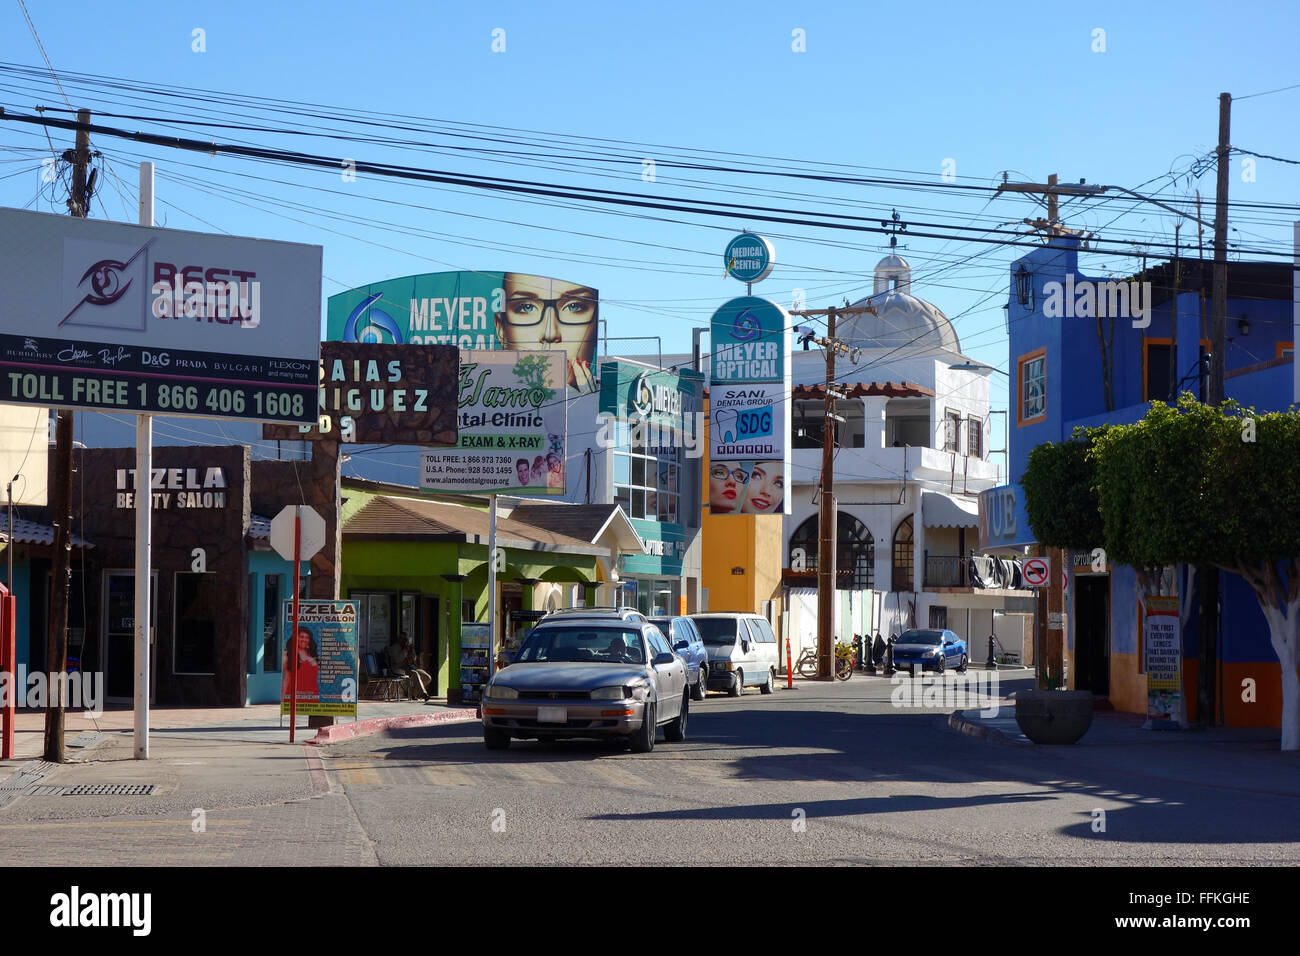 street view of los algodones, mexico showing several optical shops